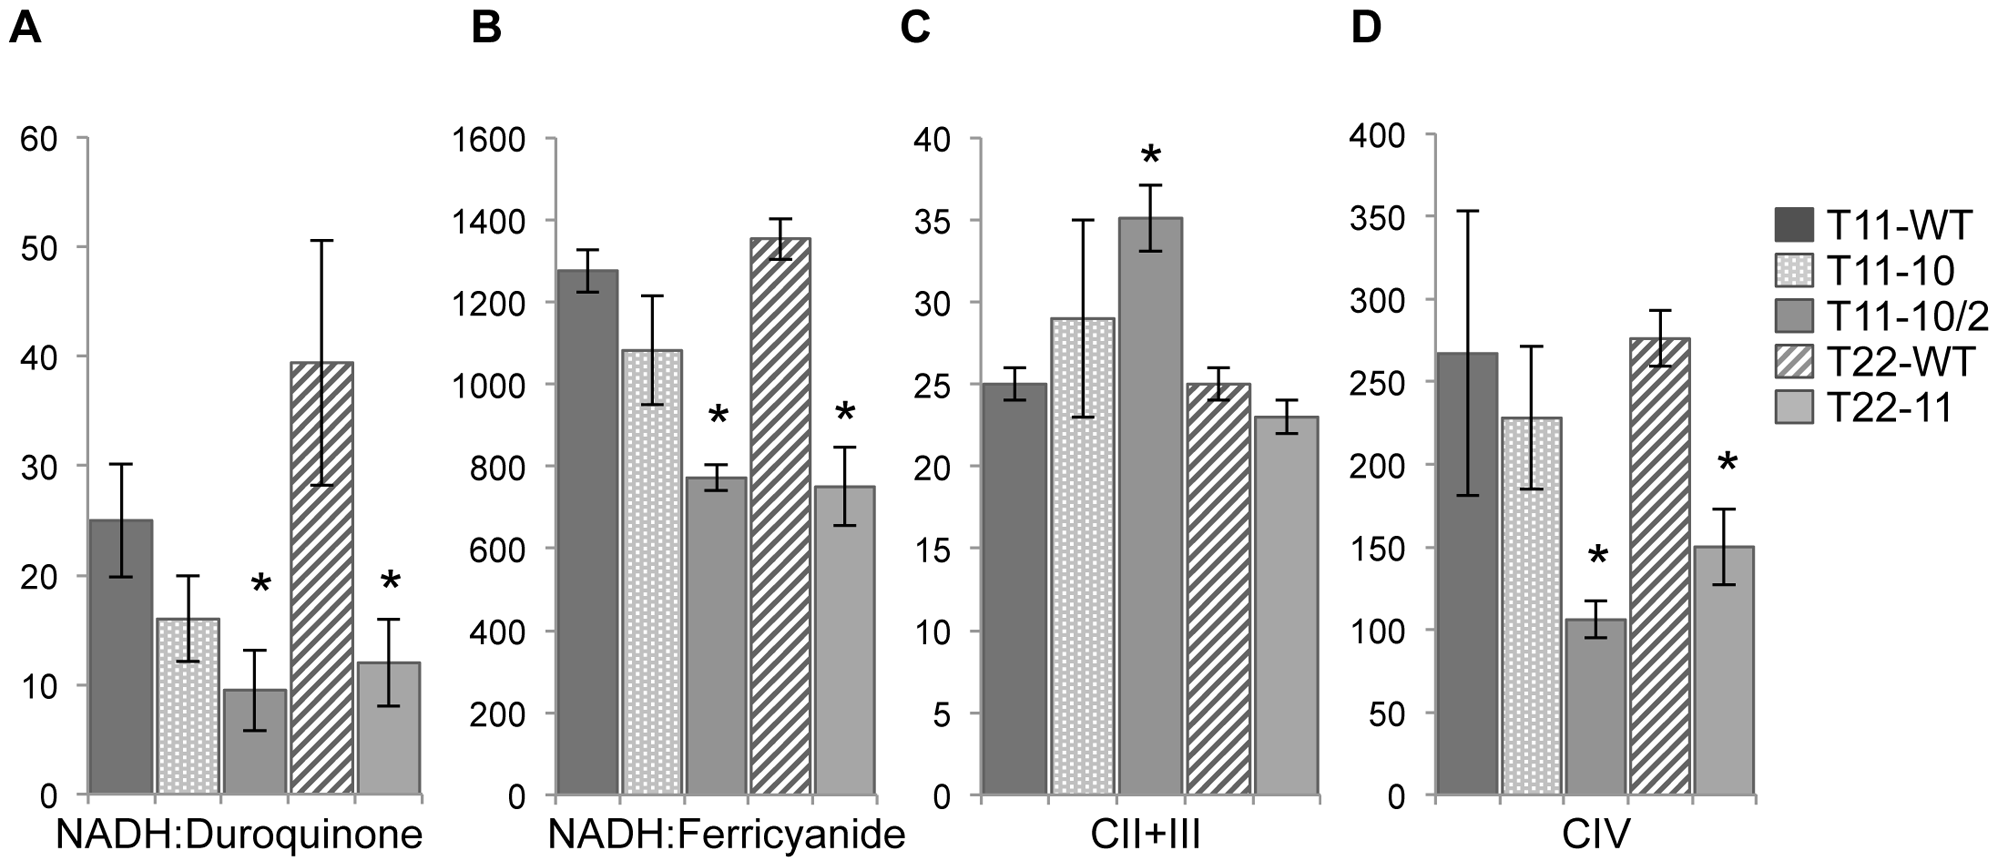 Respiratory enzyme activities of T11-10, T11-10/2, and T22-11 transformants.